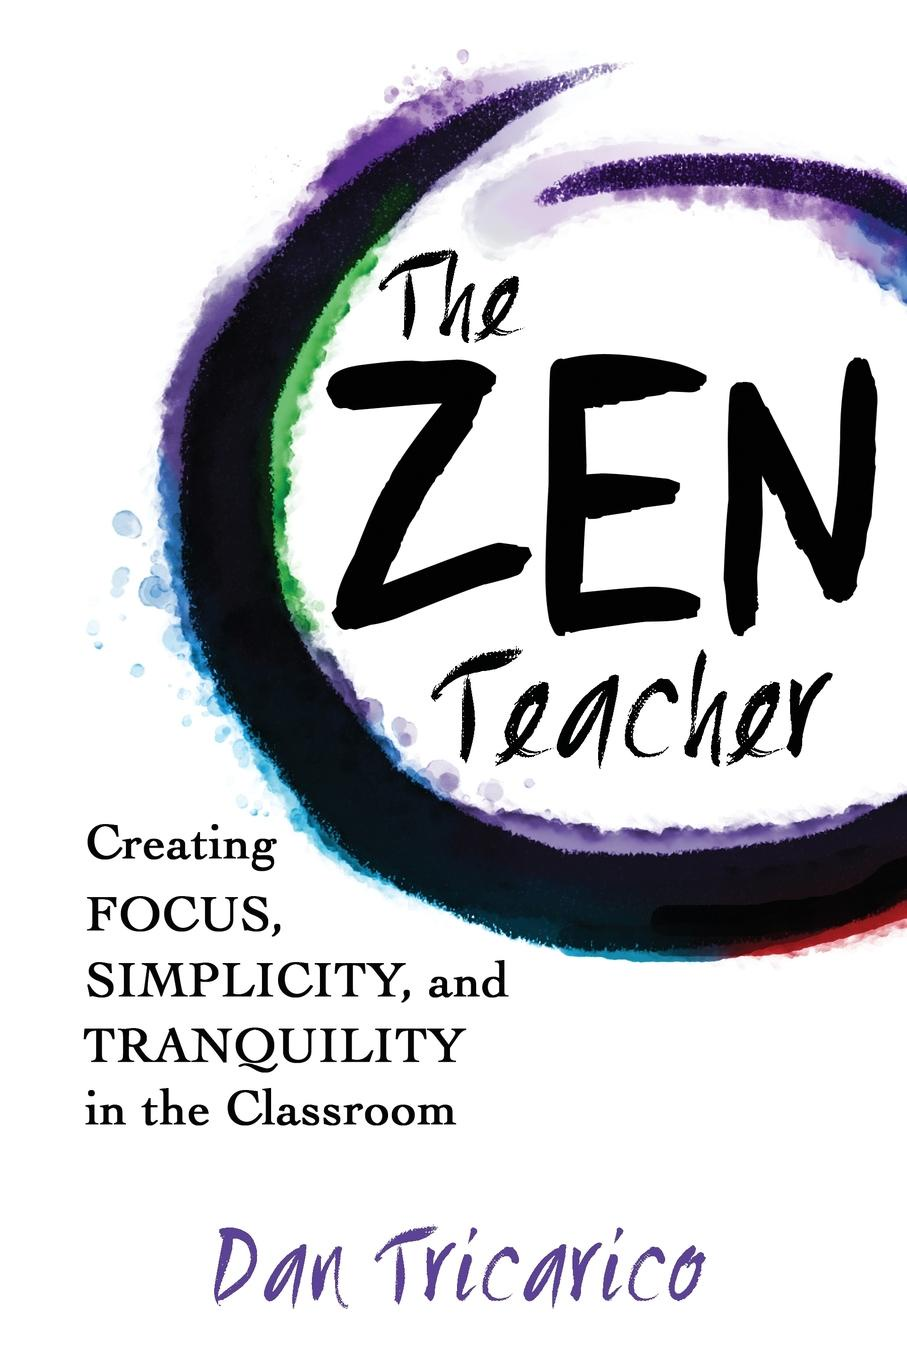 Dan Tricarico The Zen Teacher. Creating Focus, Simplicity, and Tranquility in the Classroom paul muolo $700 billion bailout the emergency economic stabilization act and what it means to you your money your mortgage and your taxes